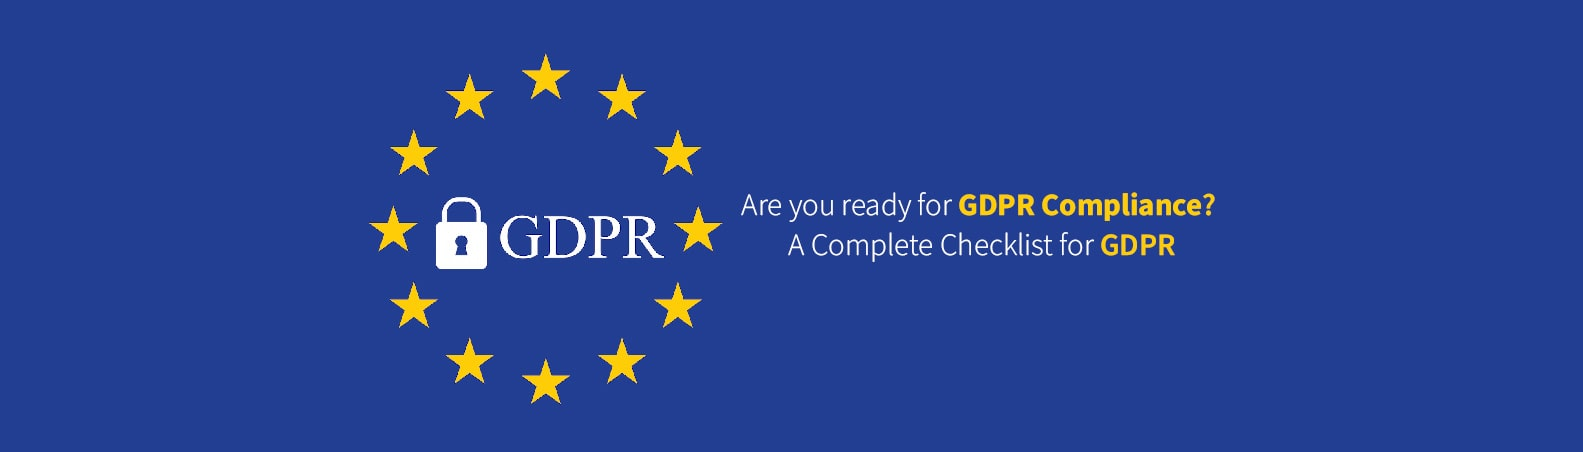 Are you ready for GDPR Compliance? – A Complete Checklist for GDPR